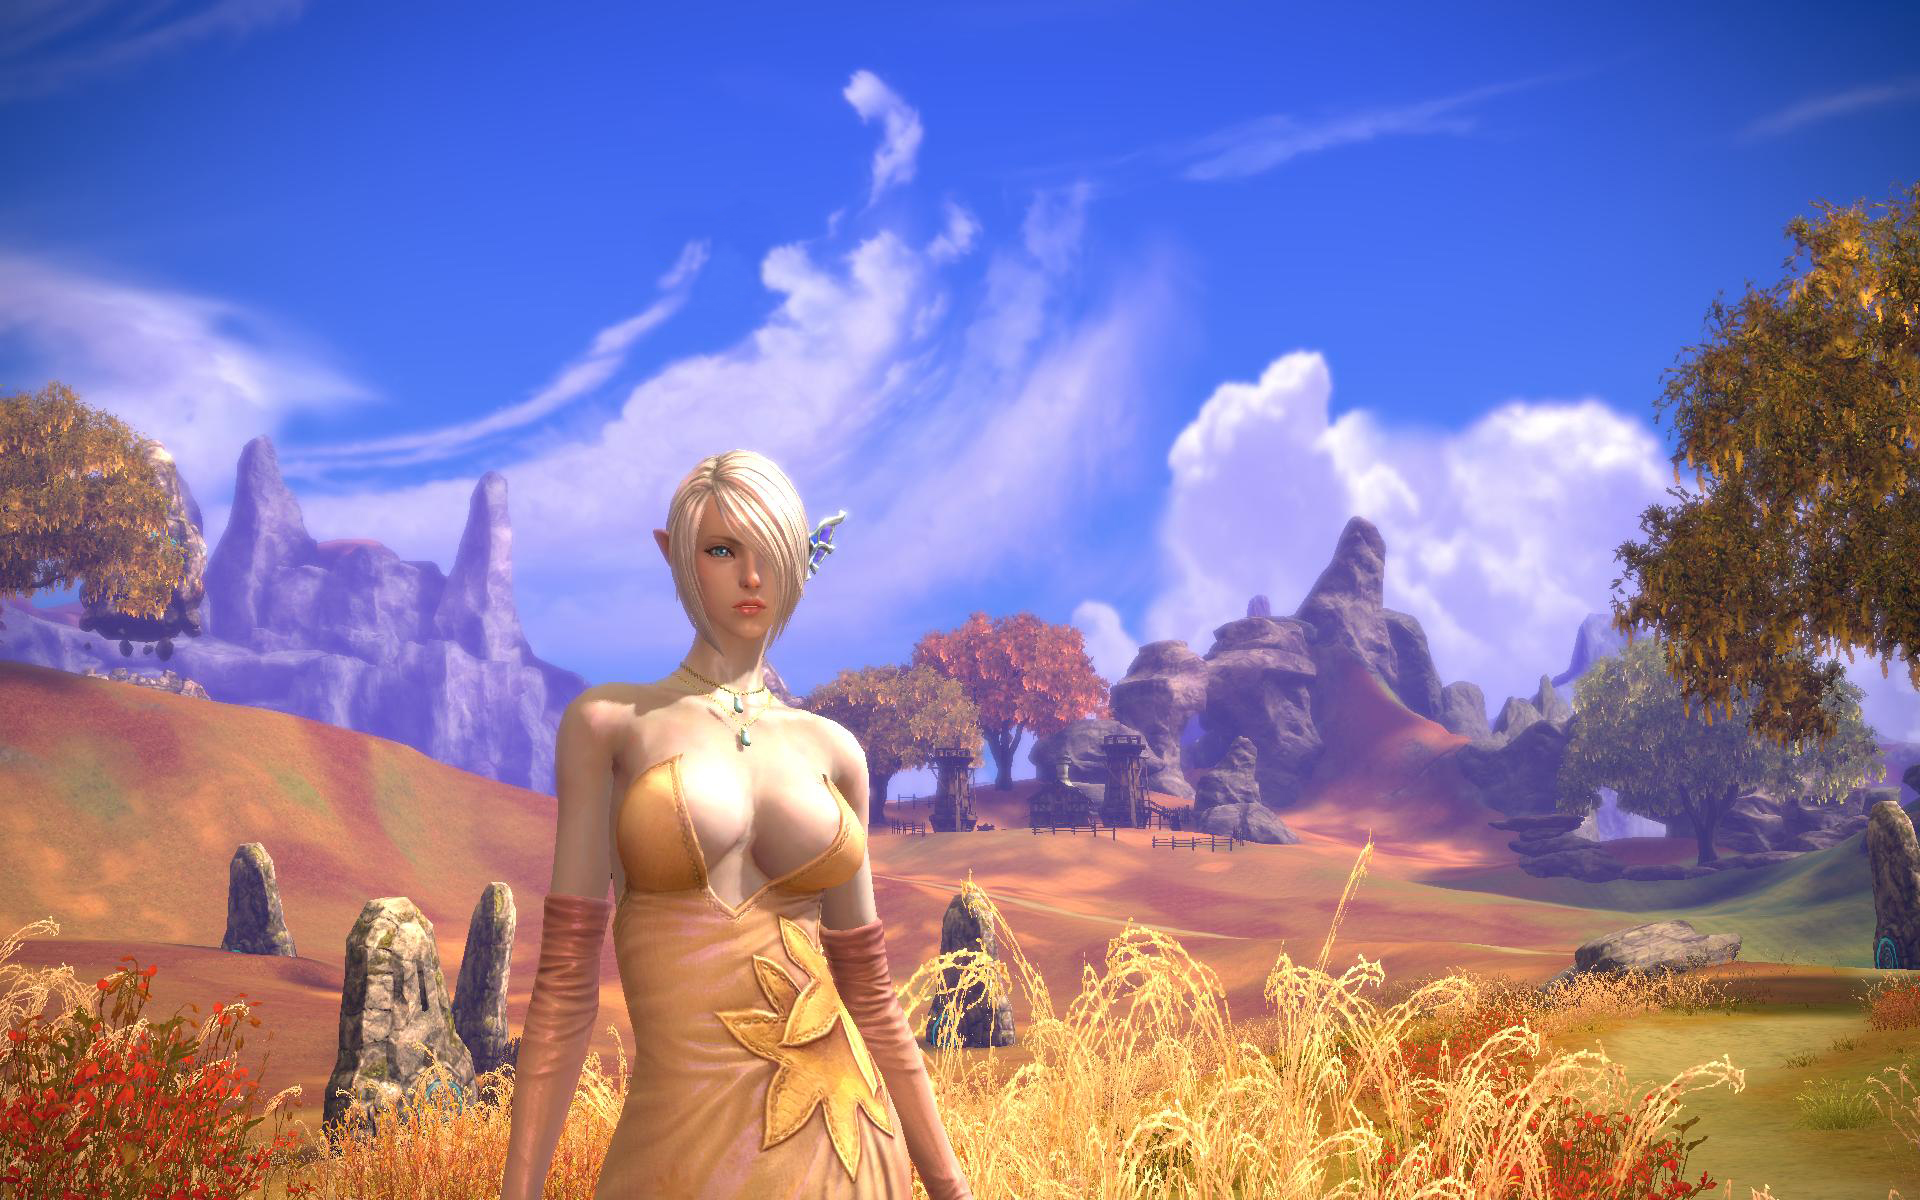 Mmorpg series with nude females porn pic